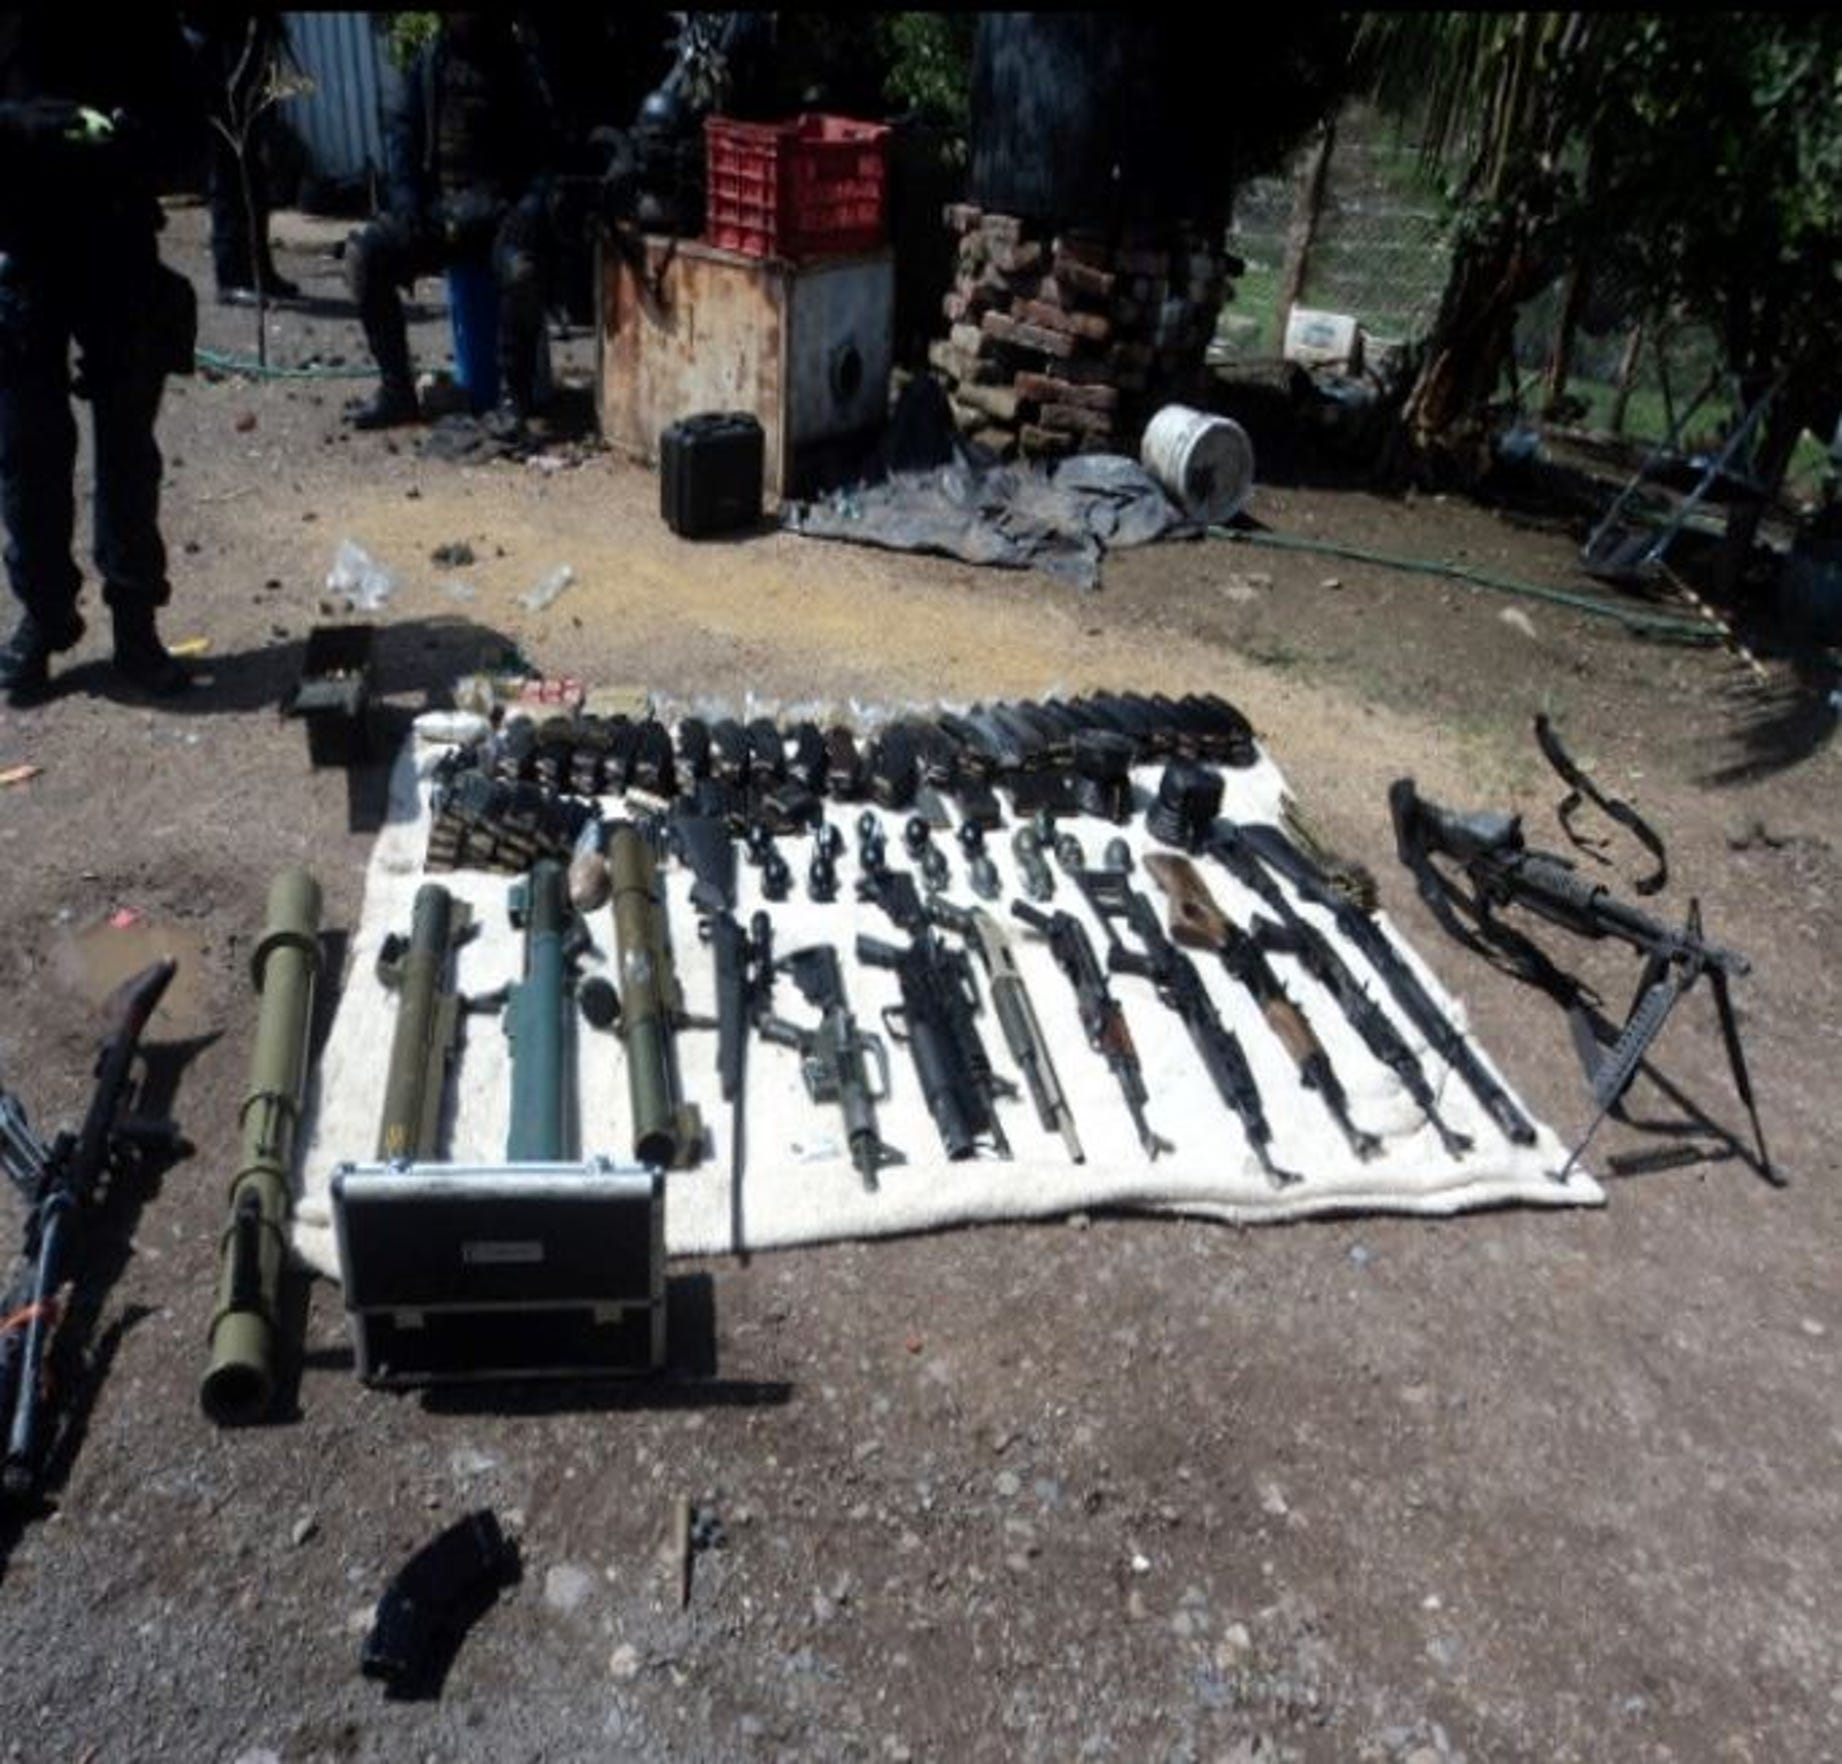 Weapons seized at the compound in rural Jalisco, where El Mencho narrowly escaped. Information from a Gulfport, Mississippi case led to the raid in 2012.